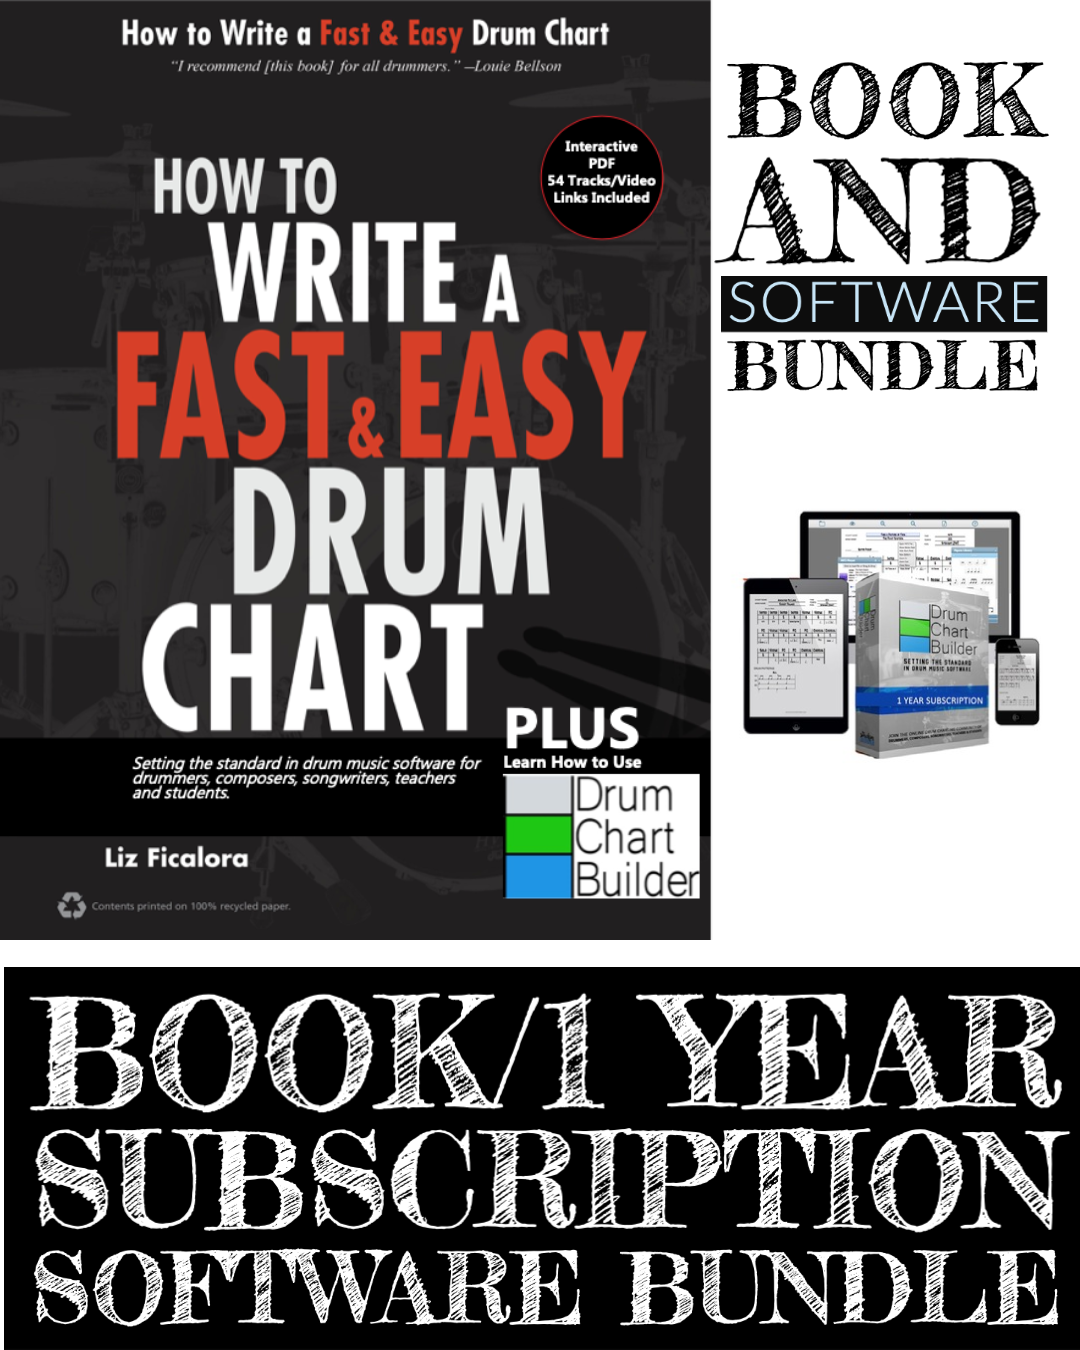 book an software bundle no price bigger